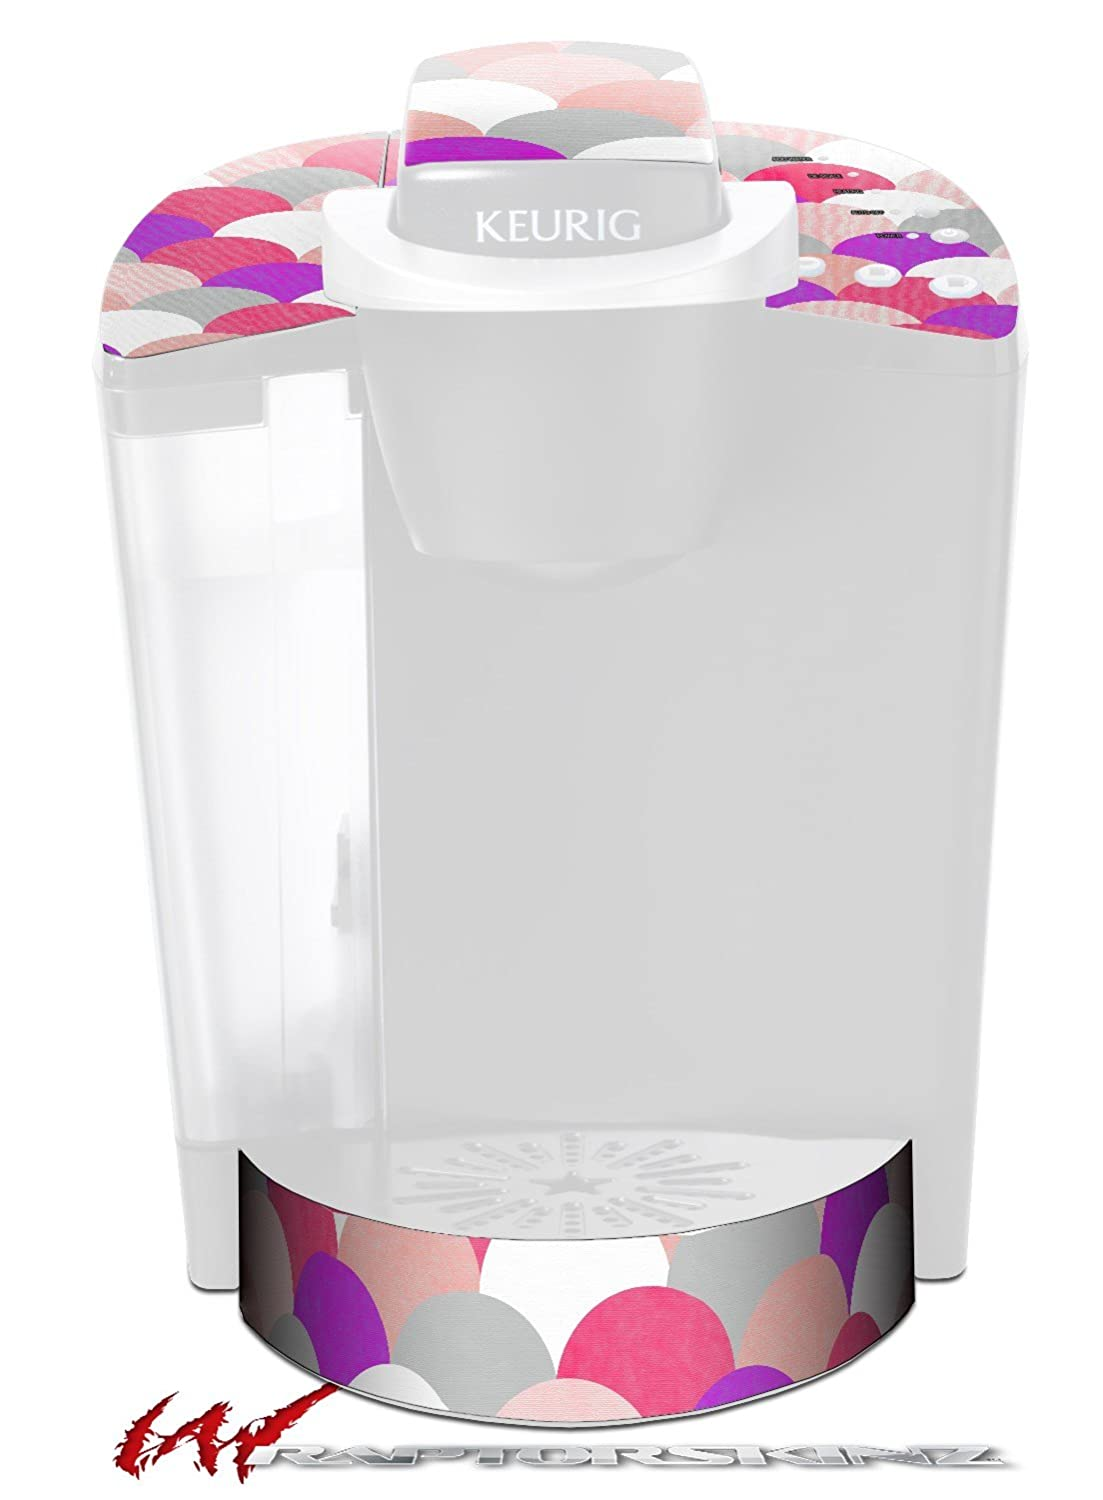 Brushed円ピンク – デカールスタイルビニールスキンFits Keurig k40 Eliteコーヒーメーカー( Keurig Not Included )   B017AK3D2E